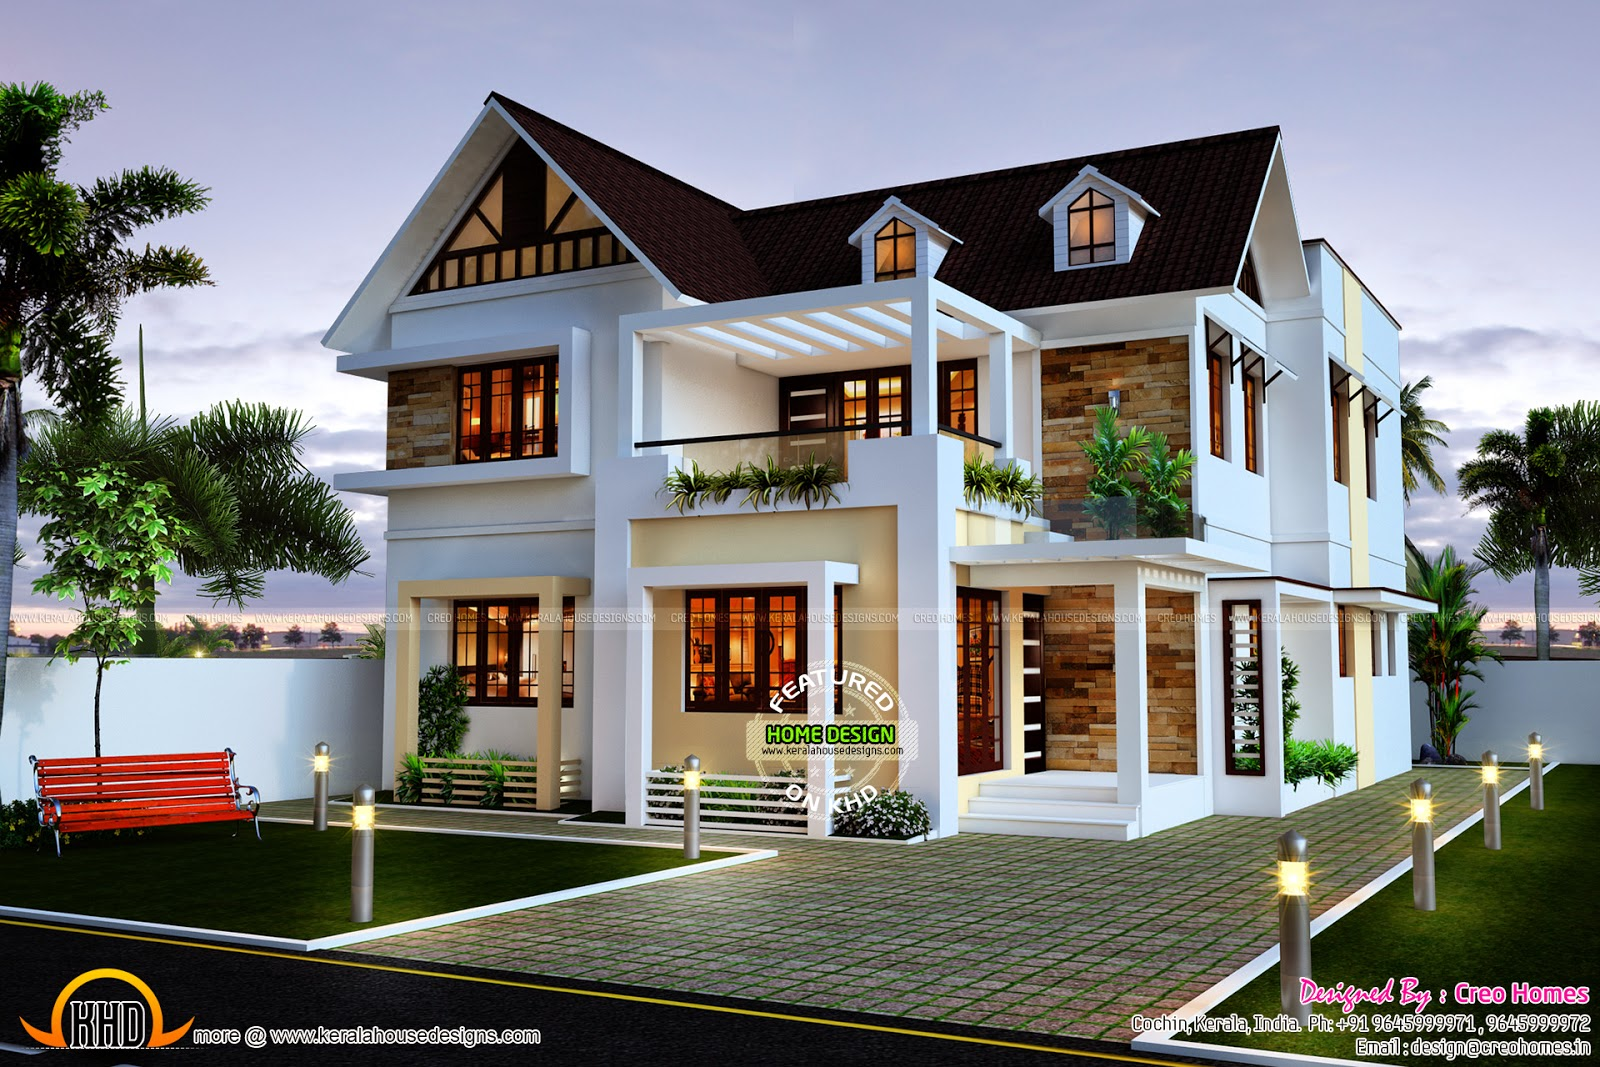 Very beautiful 4 bedroom home kerala home design and floor plans Gorgeous small bedroom designs for indian homes